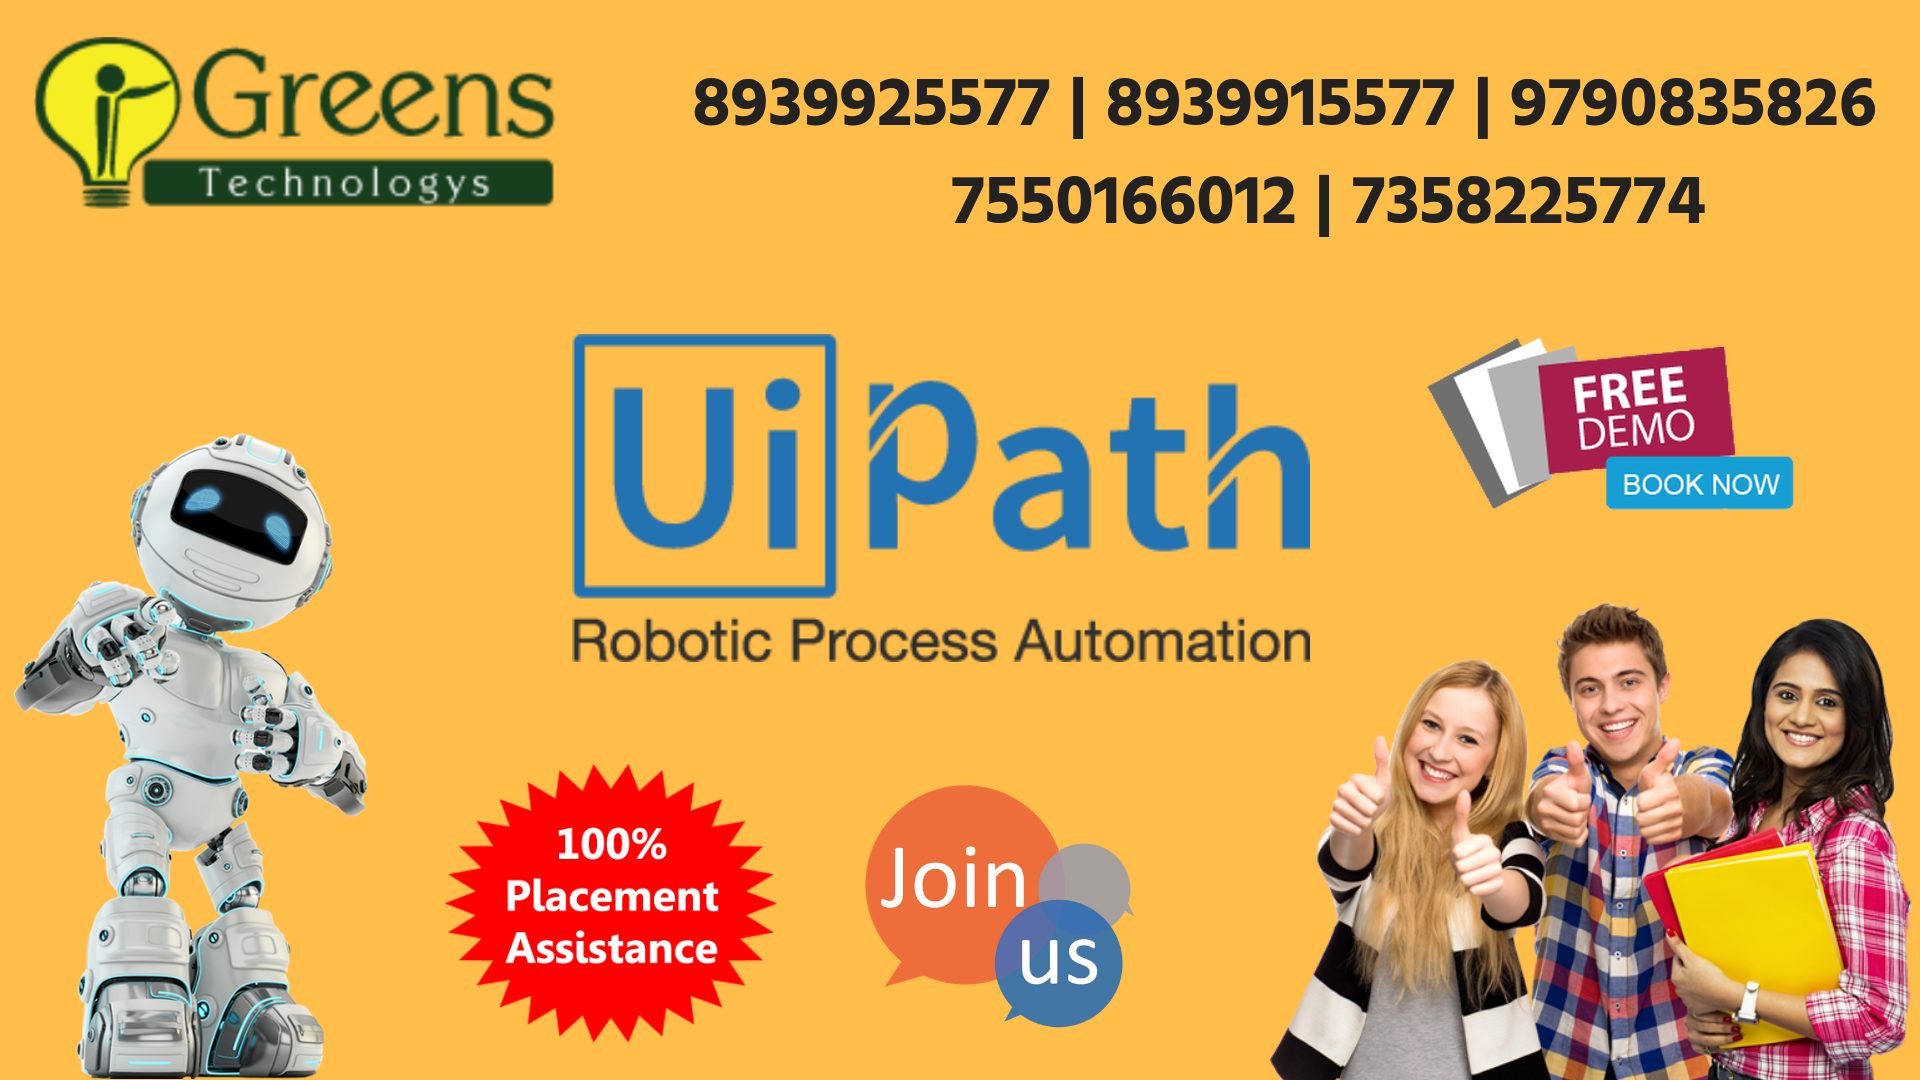 UiPath Training in Chennai | UiPath | Chennai, Classroom training